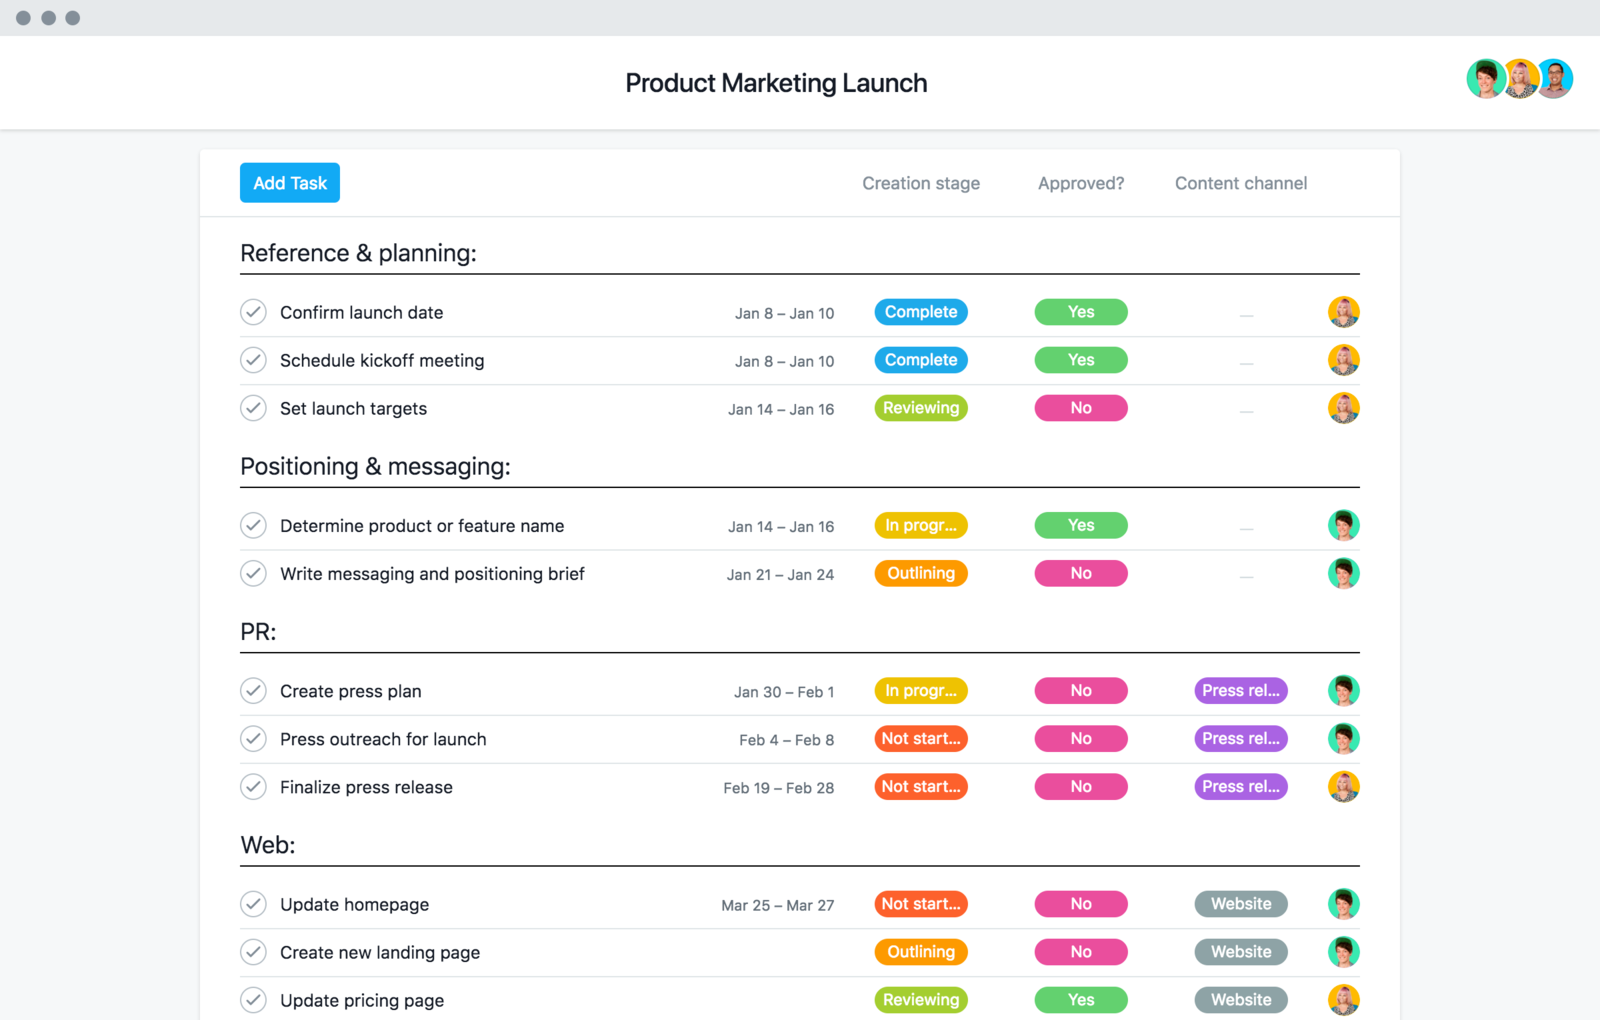 Product marketing launch template